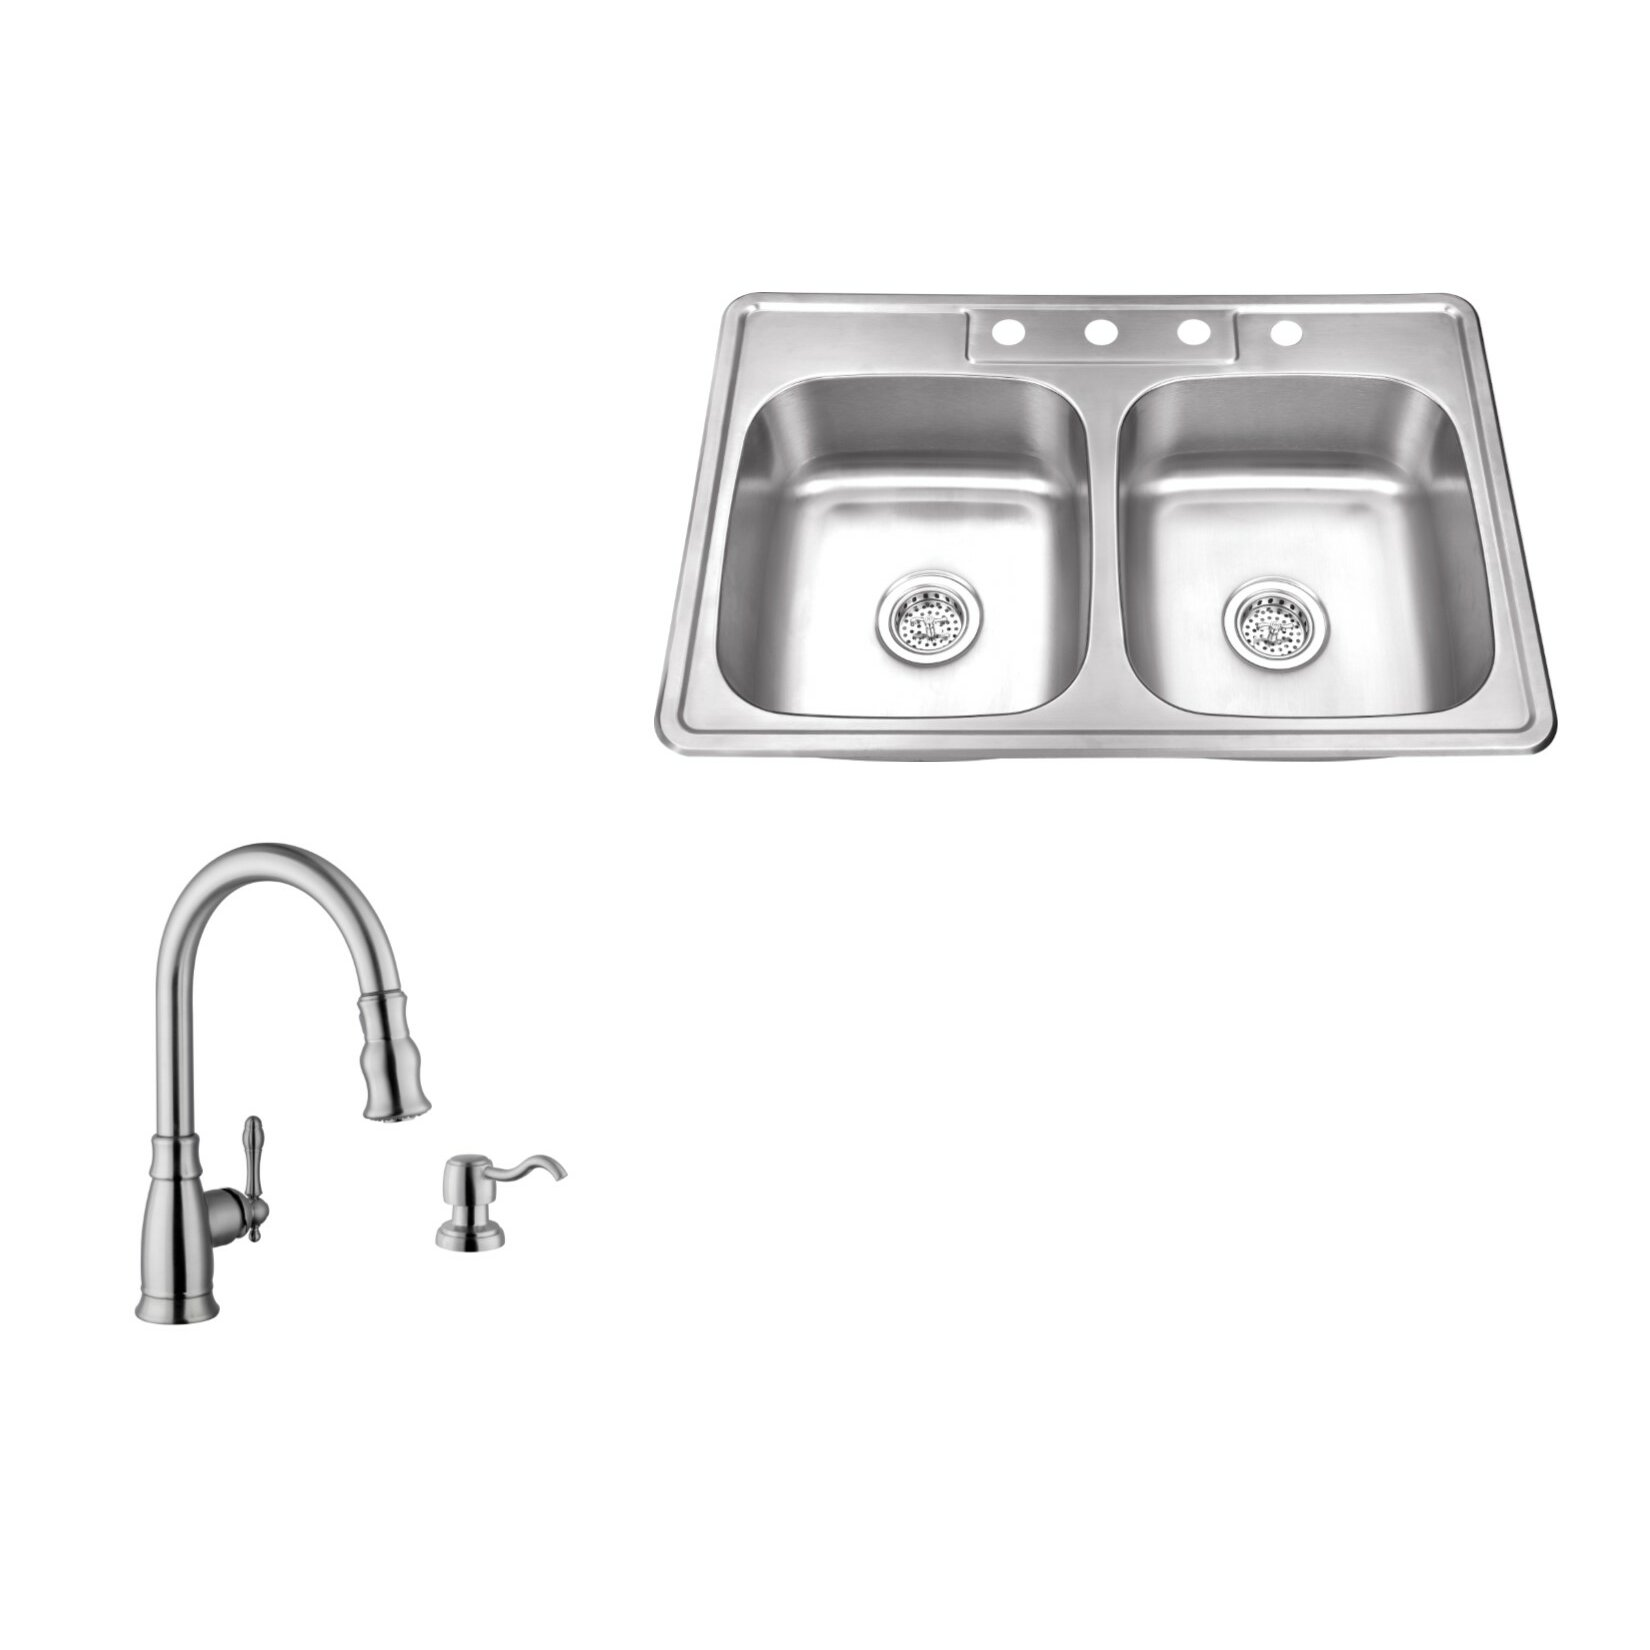 Drop In Kitchen Sinks Double Bowl : ... 33